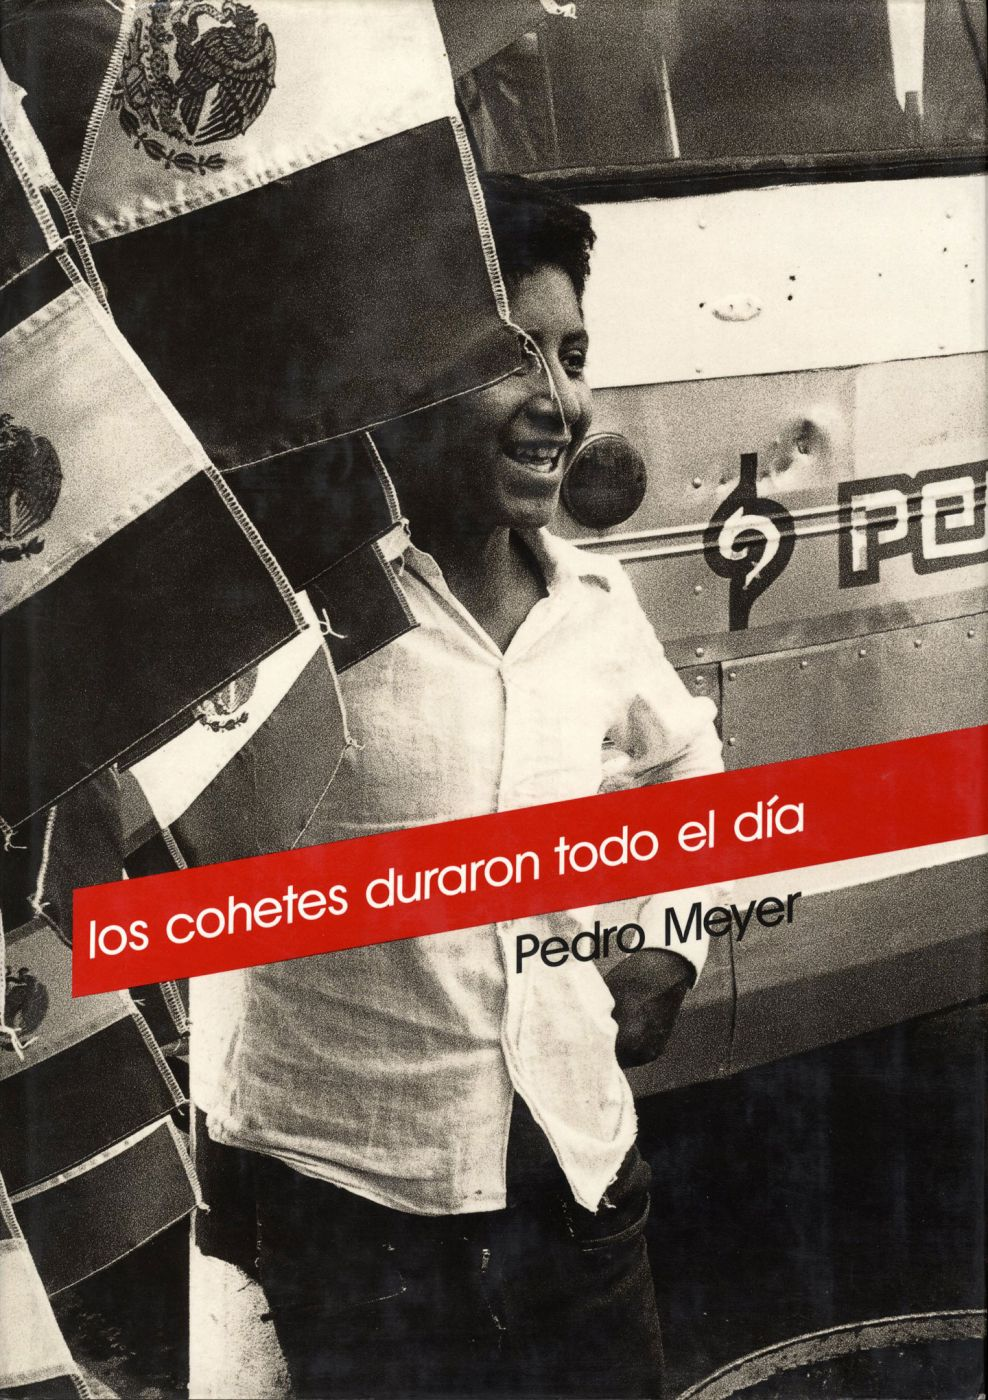 Pedro Meyer: Los cohetes duraron todo el día (The Rockets Went on All Day)